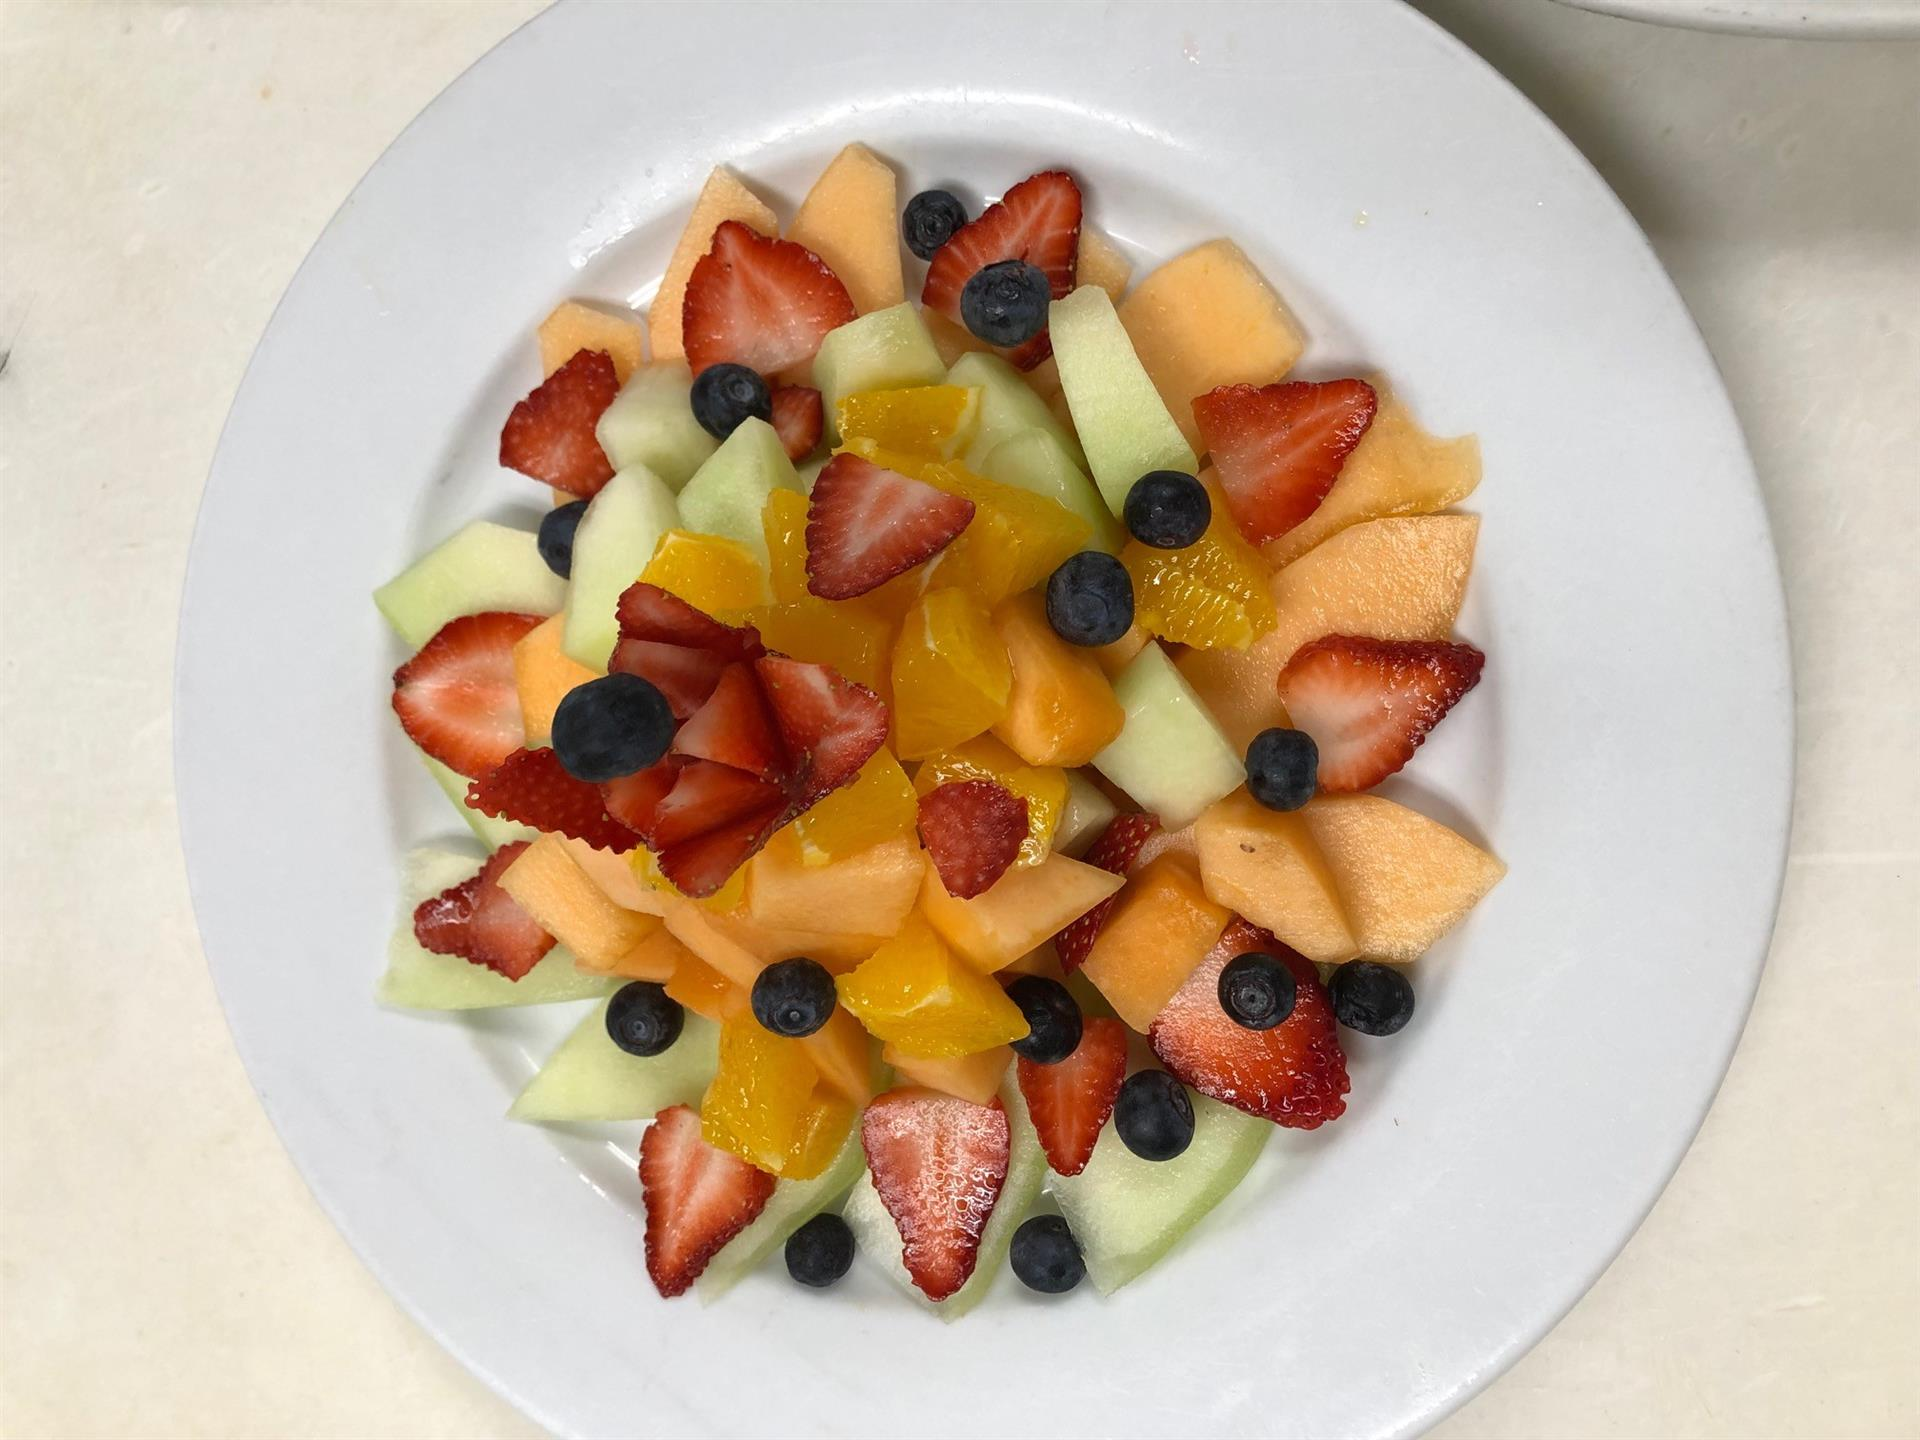 plate of sliced fruit